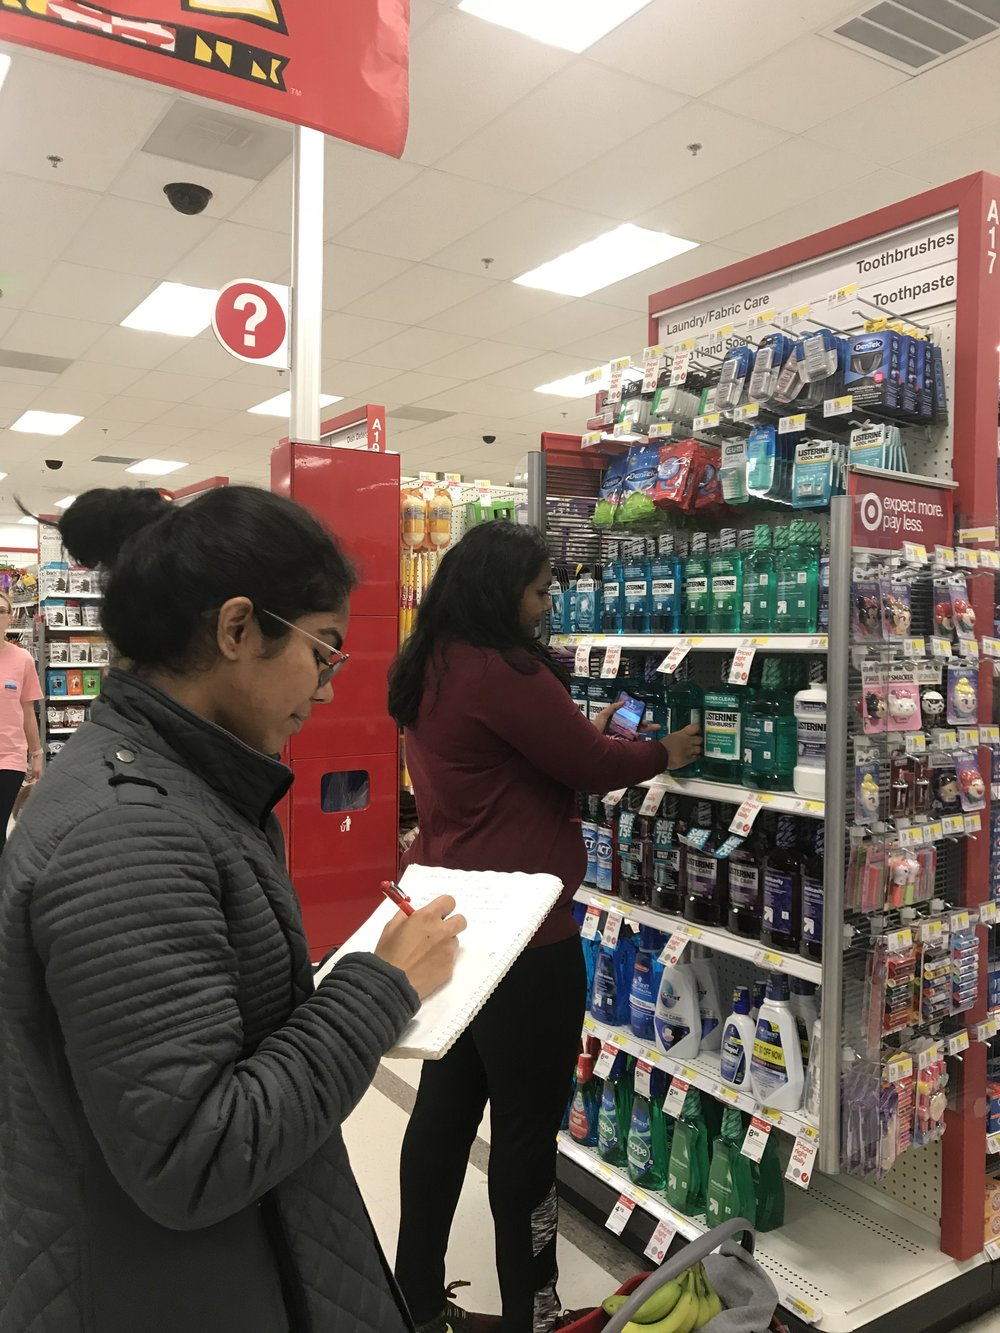 Image 5. A contextual inquiry in progress with an interviewee at Target.